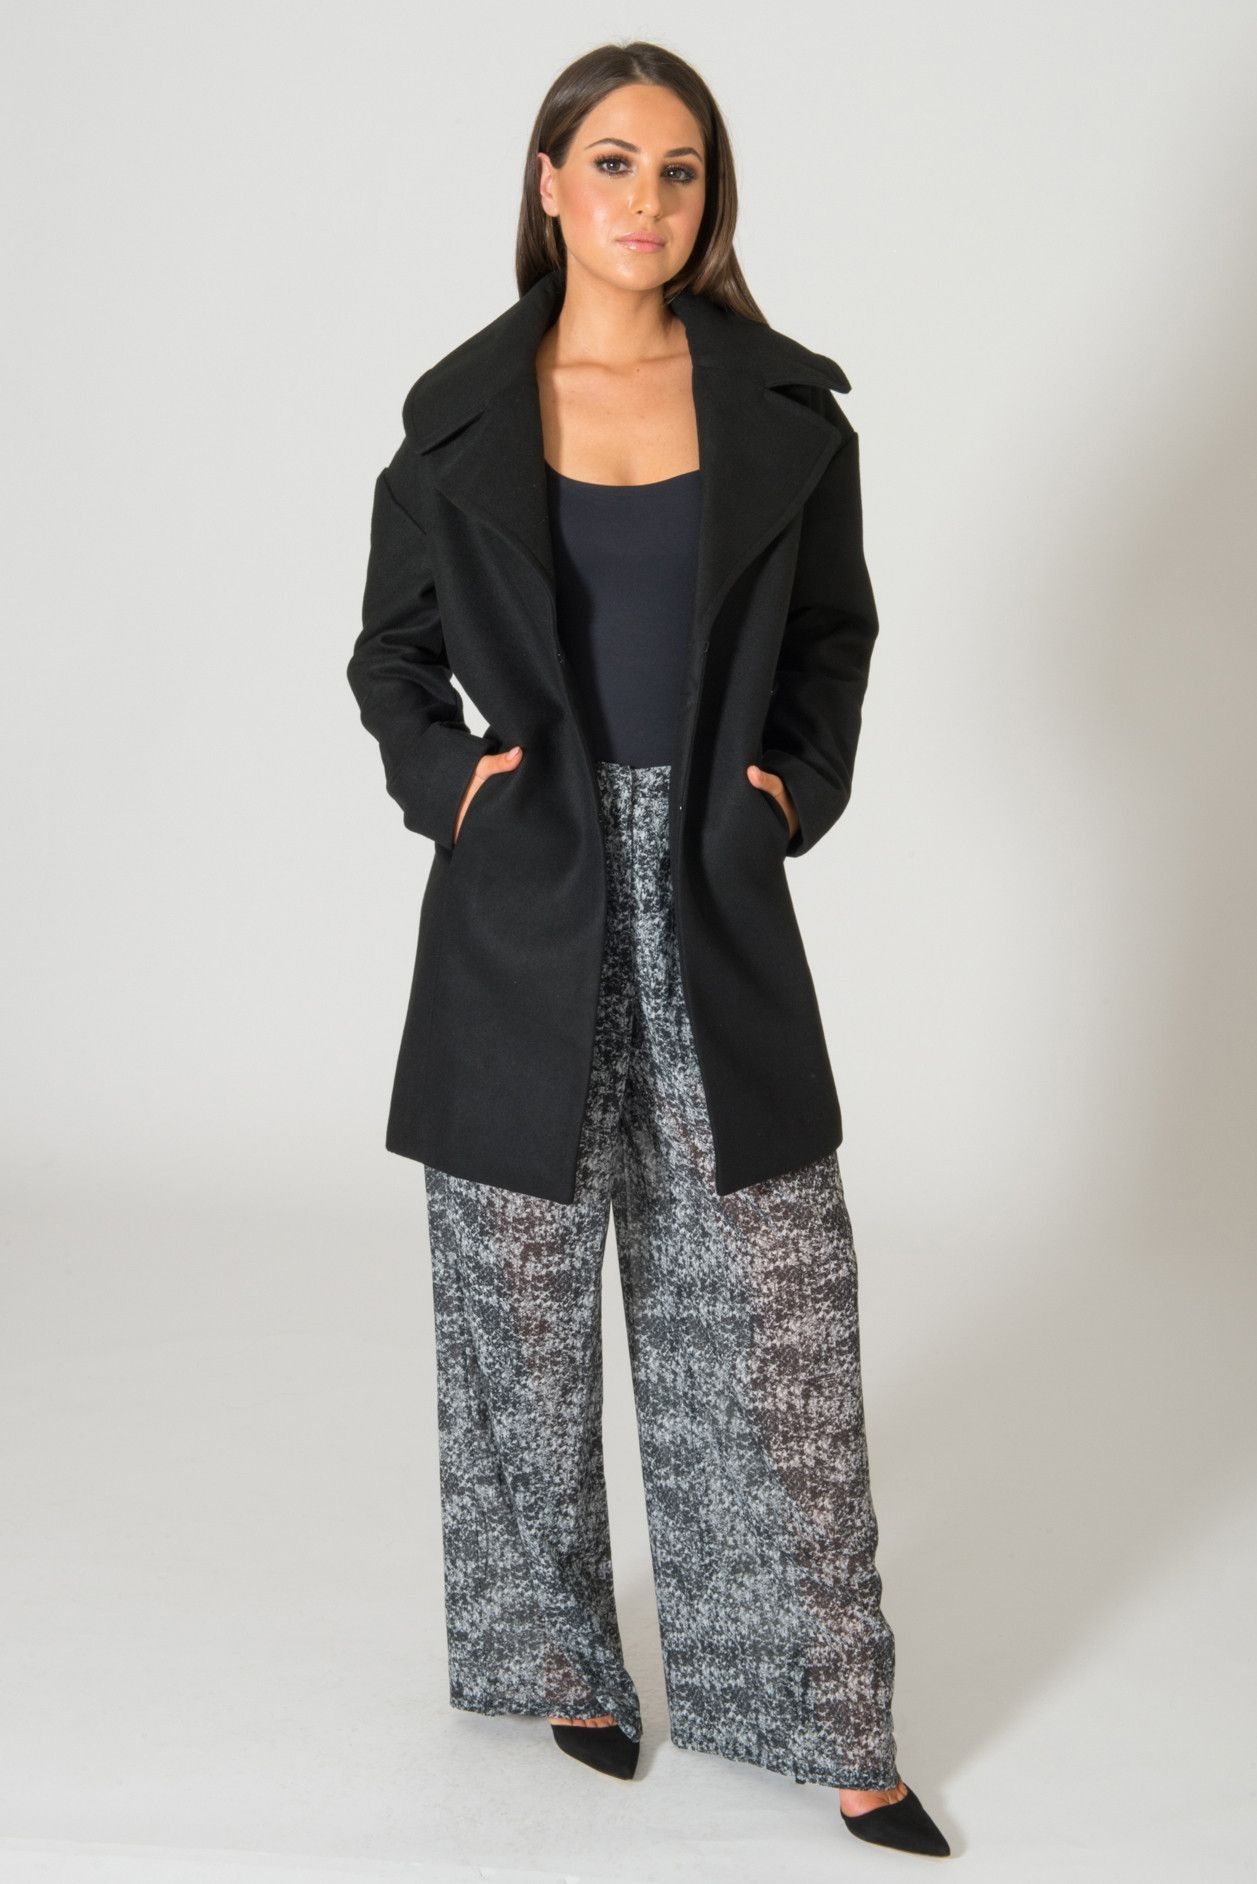 It's just a graphic of Lively Brave Soul Black Label Wool Coat